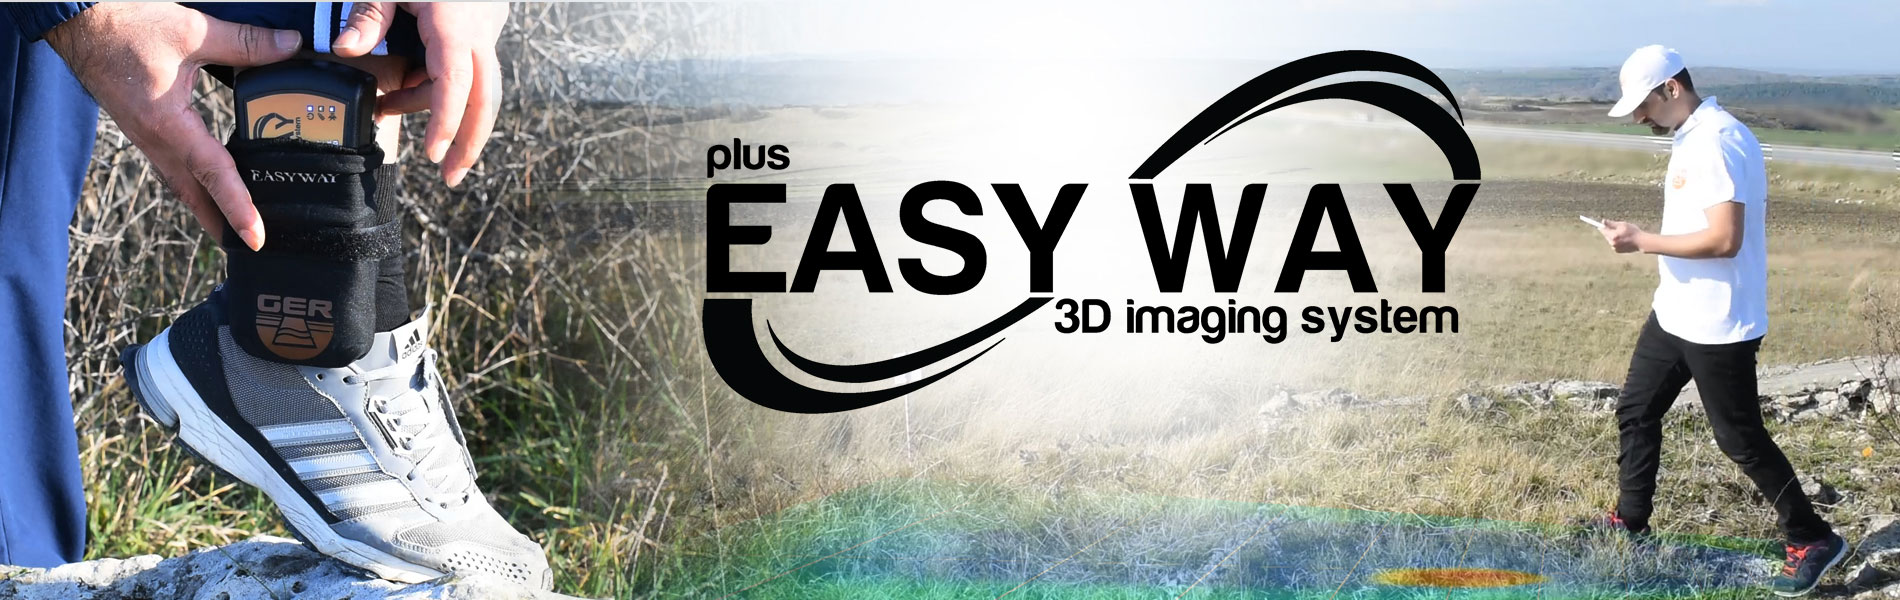 easy-way-device-3D- imaging-system-gold-caves-locator